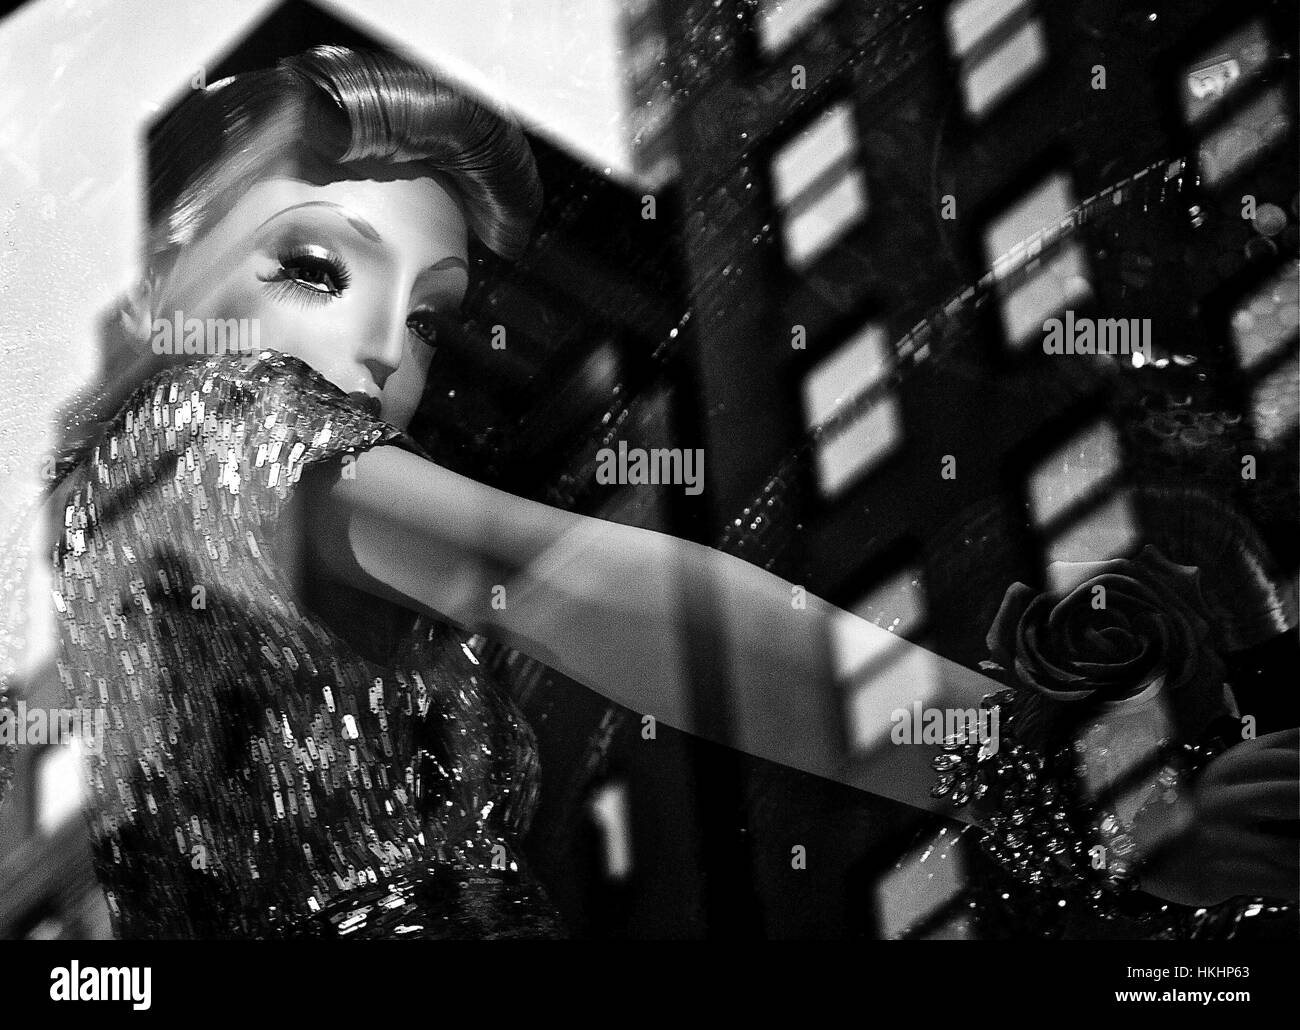 Black and white image of a 50s style mannequin with window reflection taken january in new